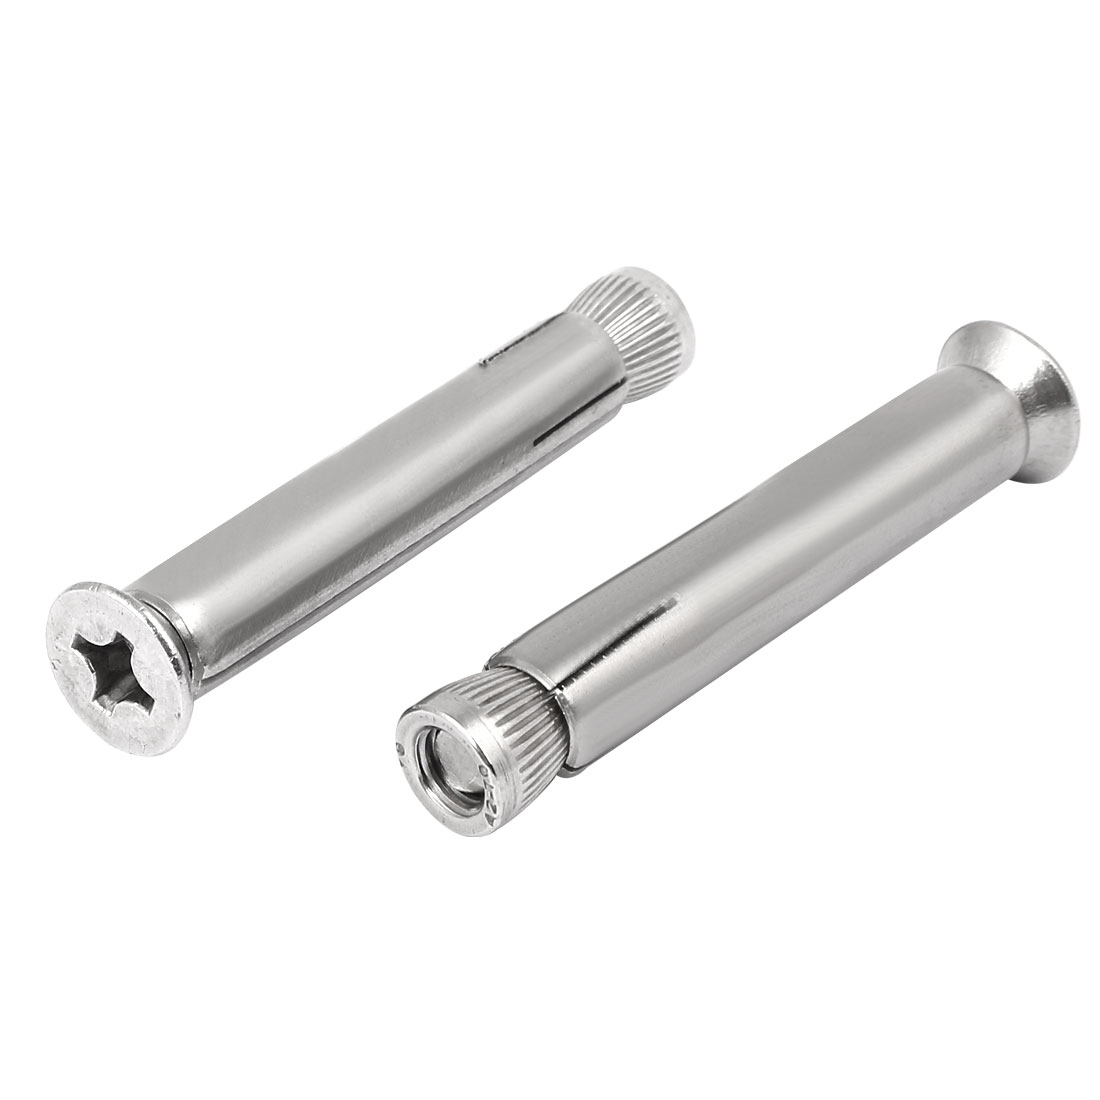 M8 x 70mm 304 Stainless Steel Countersunk Head Sleeve Anchor Expansion Bolt 2PCS